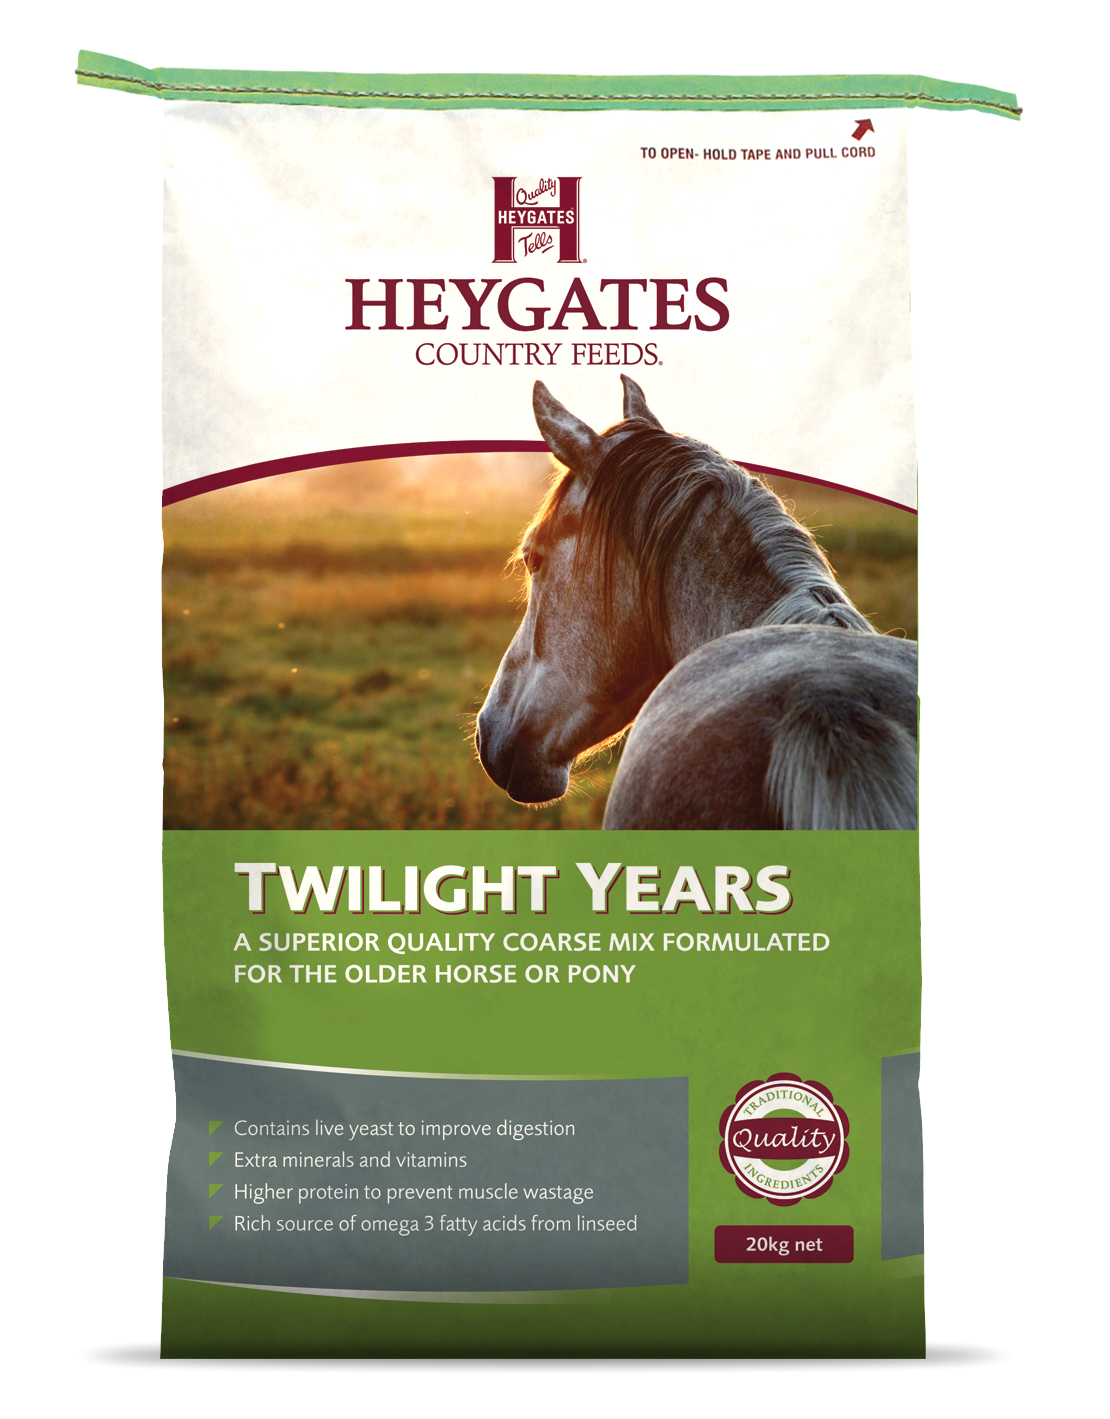 491-Twilight-Years-Bag.jpg